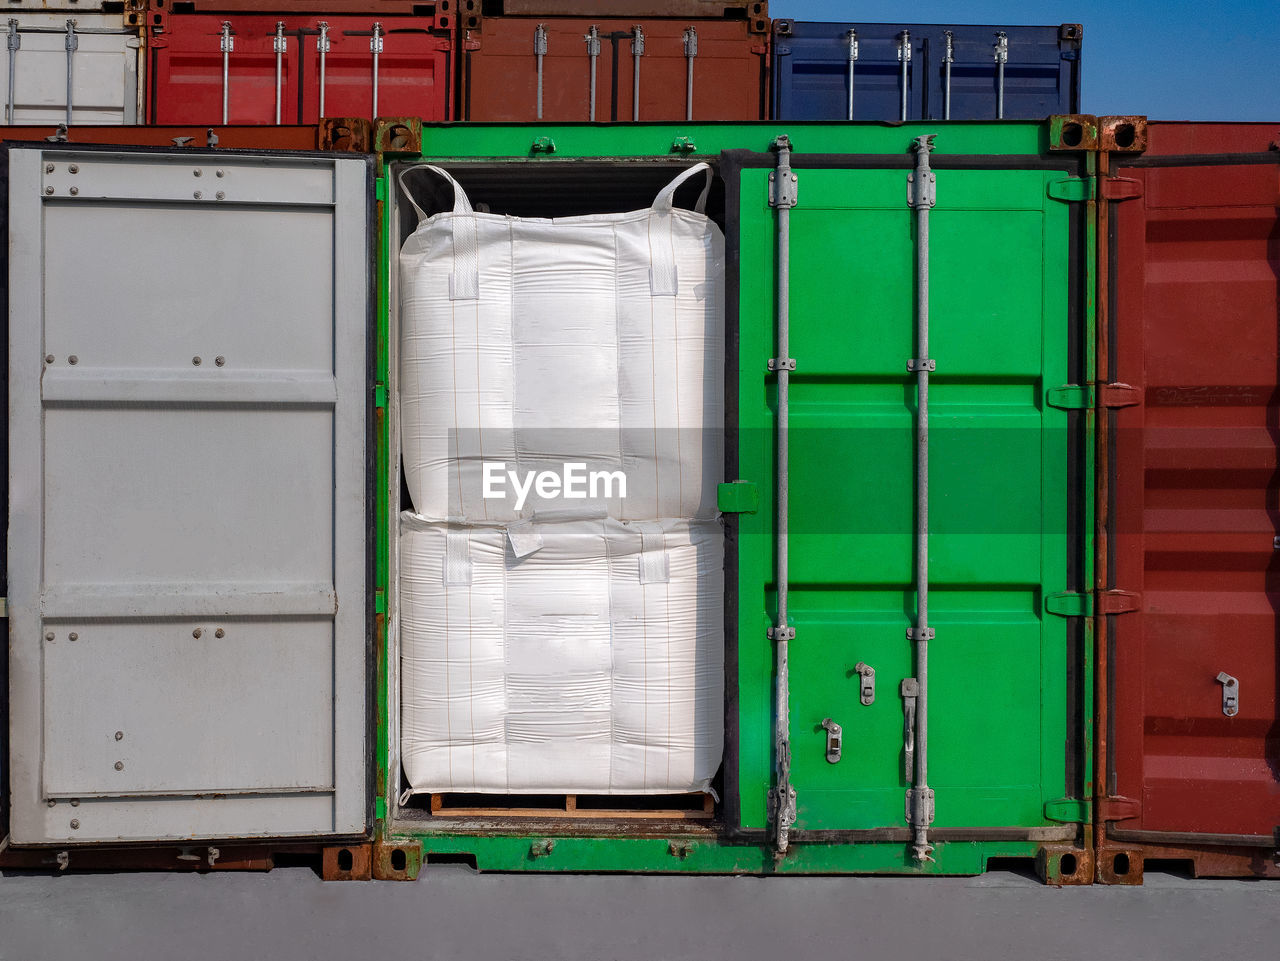 green color, container, industry, no people, architecture, box, freight transportation, white color, building, day, stack, outdoors, crate, cargo container, built structure, metal, wall - building feature, nature, business, shipping, box - container